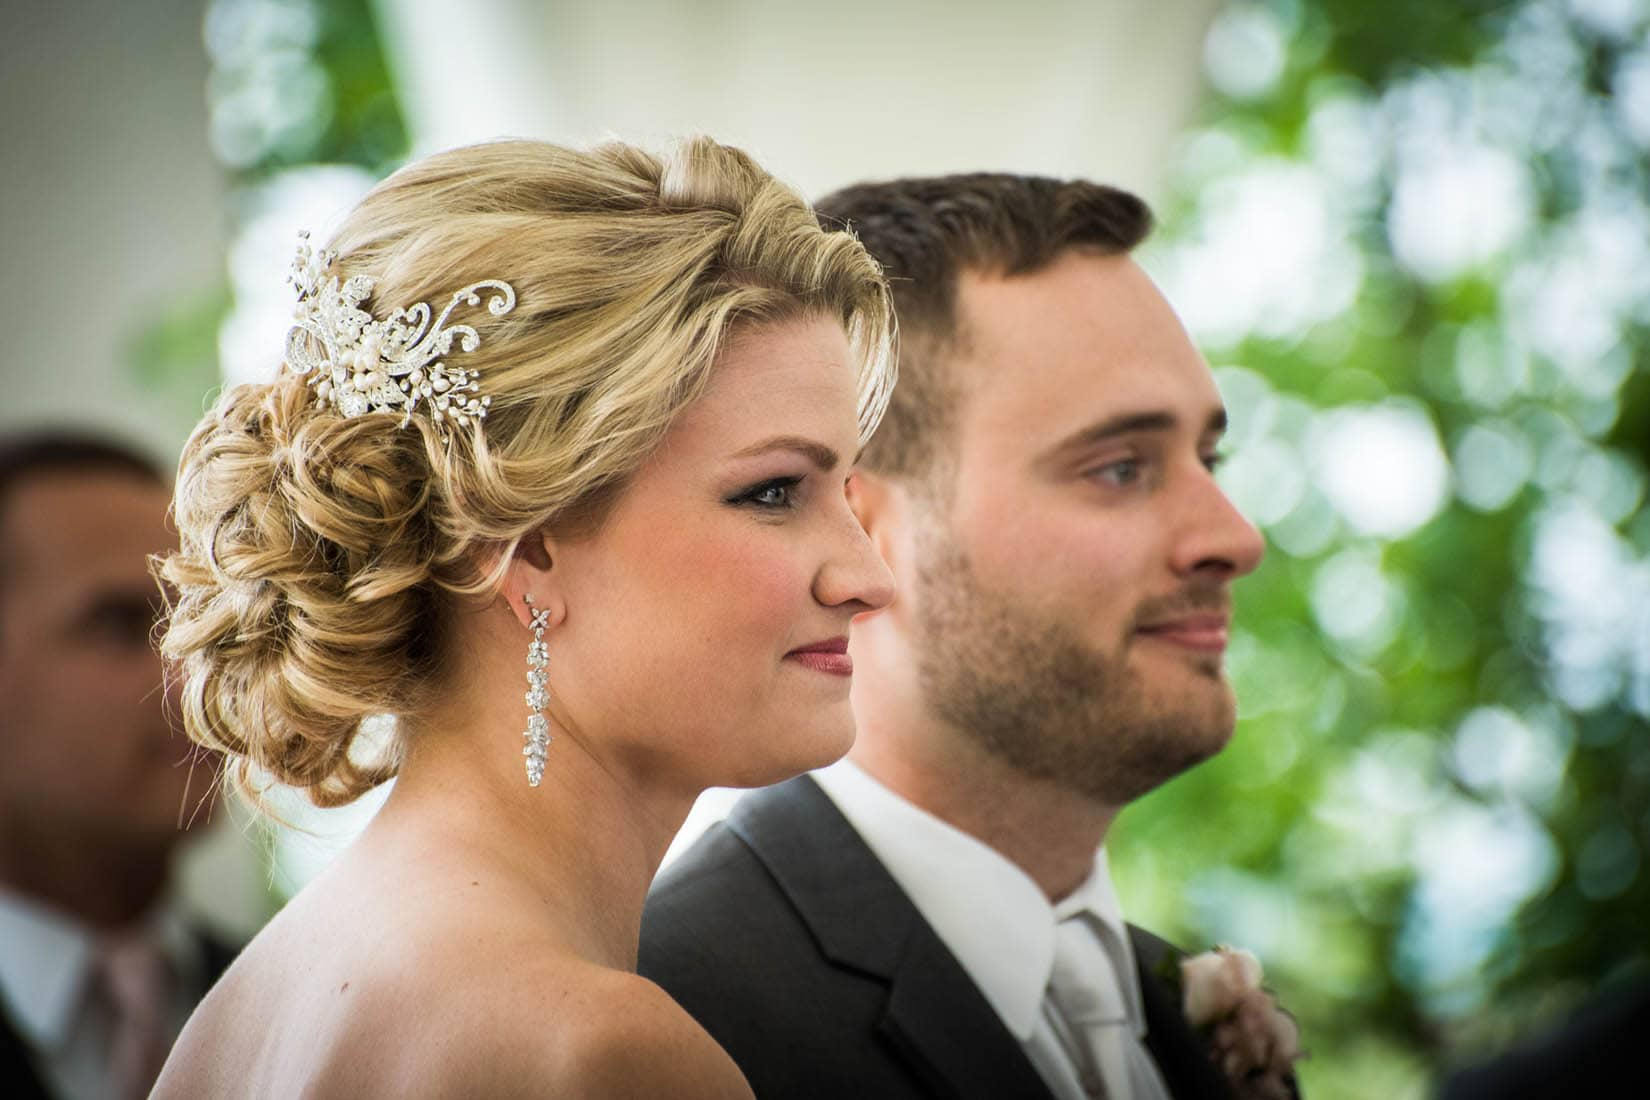 Penn State Arboretum Wedding, State College, PA – Bob Lambert Photography